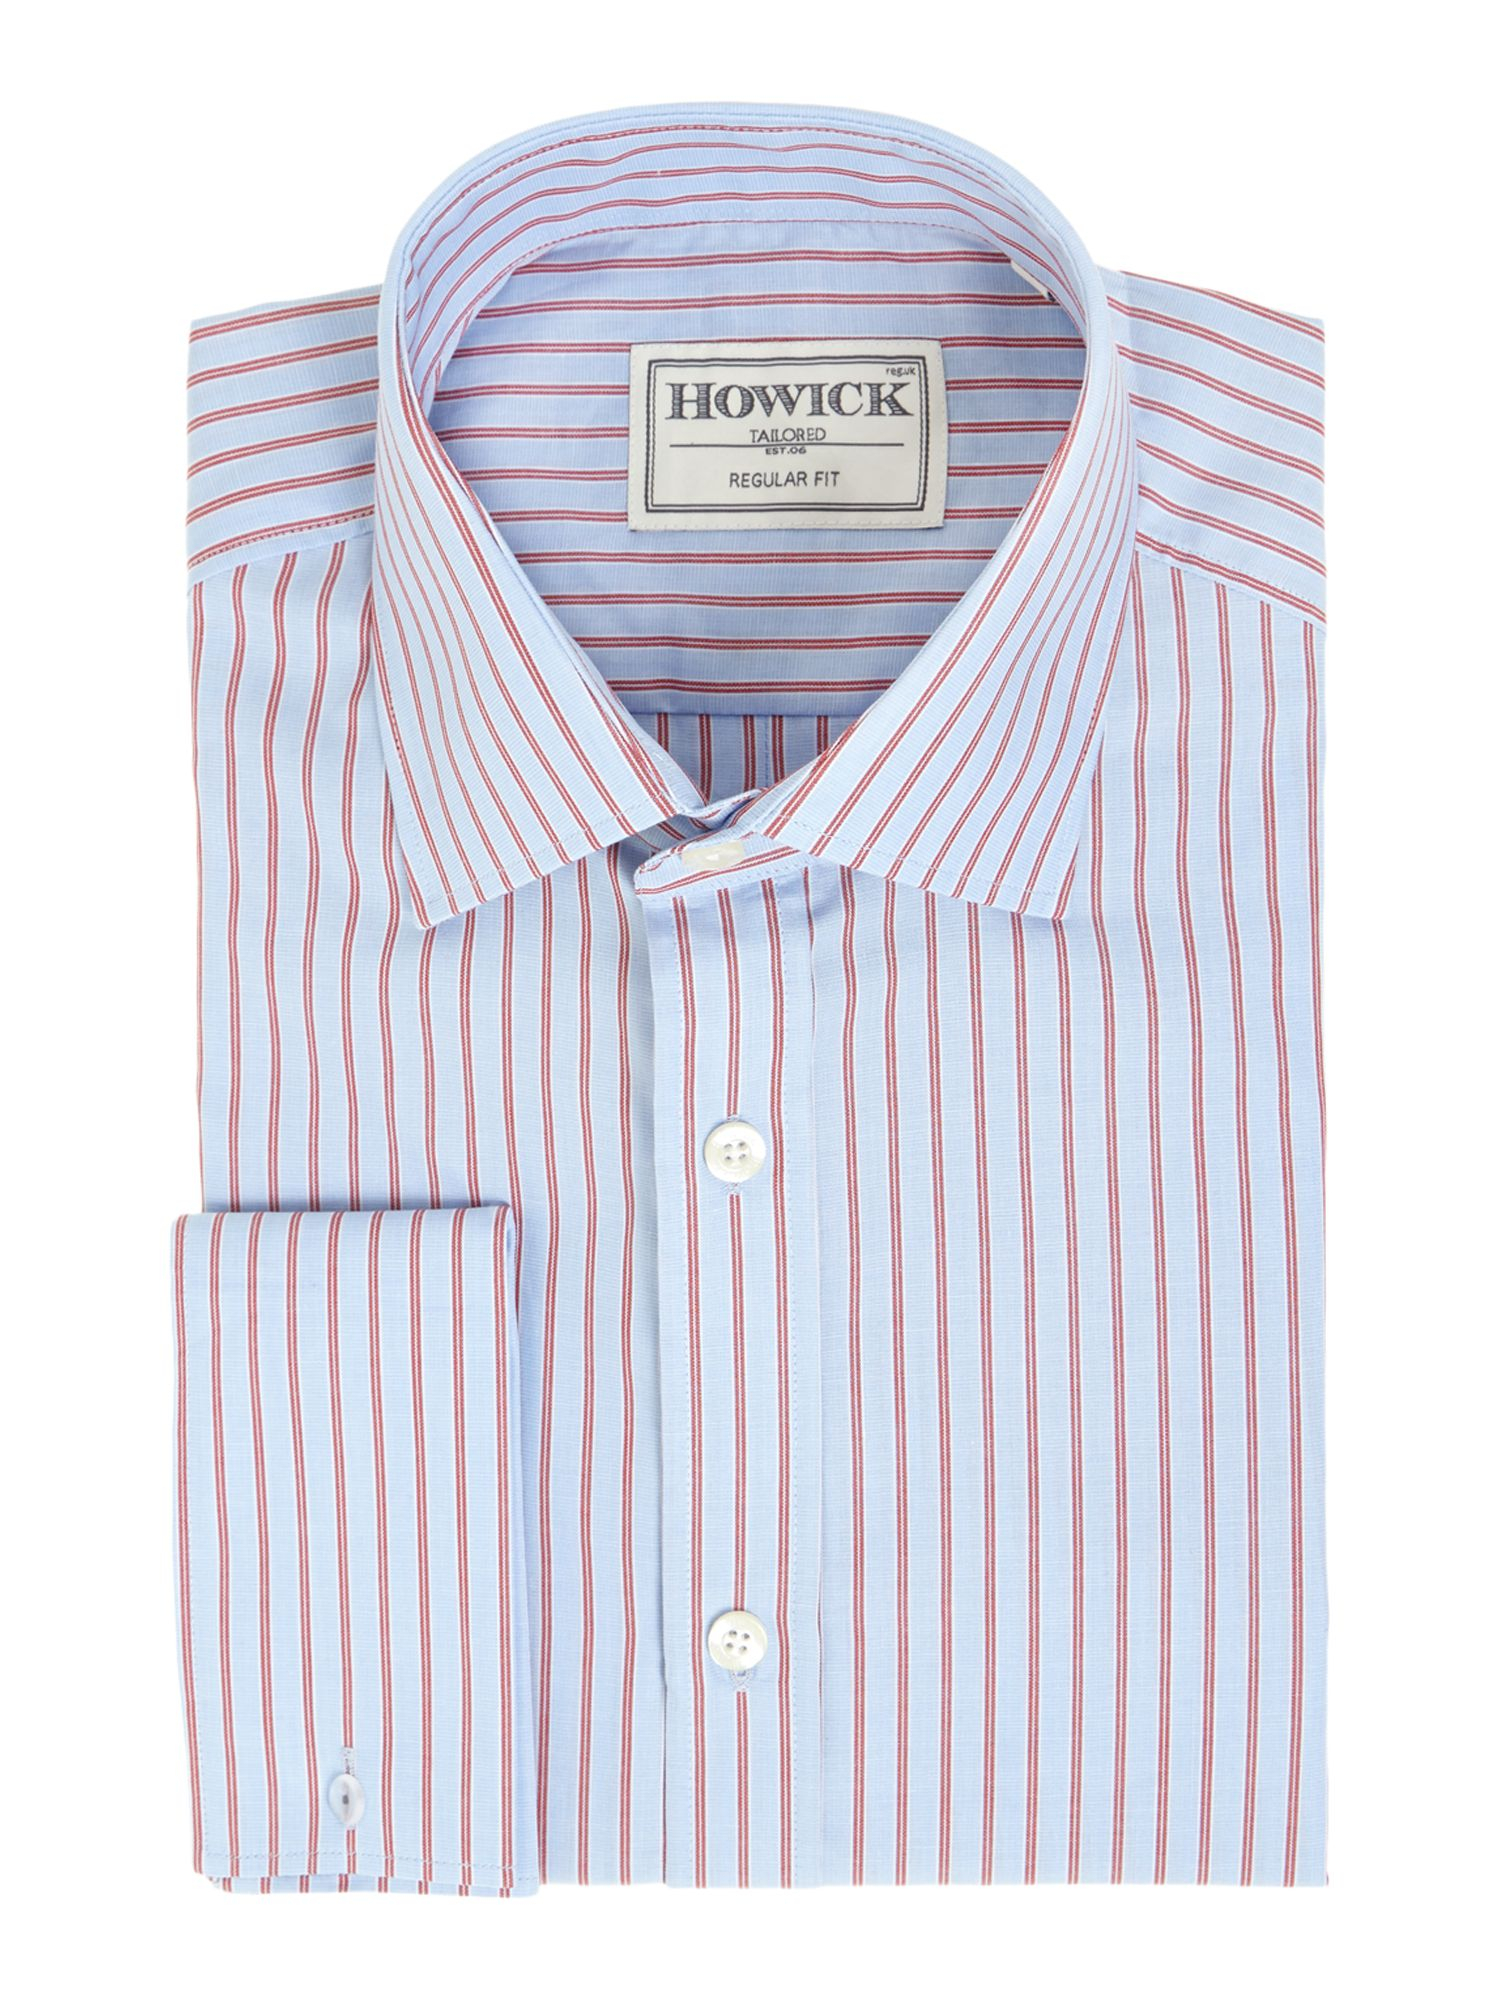 chardon men Chardon derby (women) on sale and discount prices find to buy cheap hush puppies  with mens fashion there tends to be 2 opposite ends of the scale.